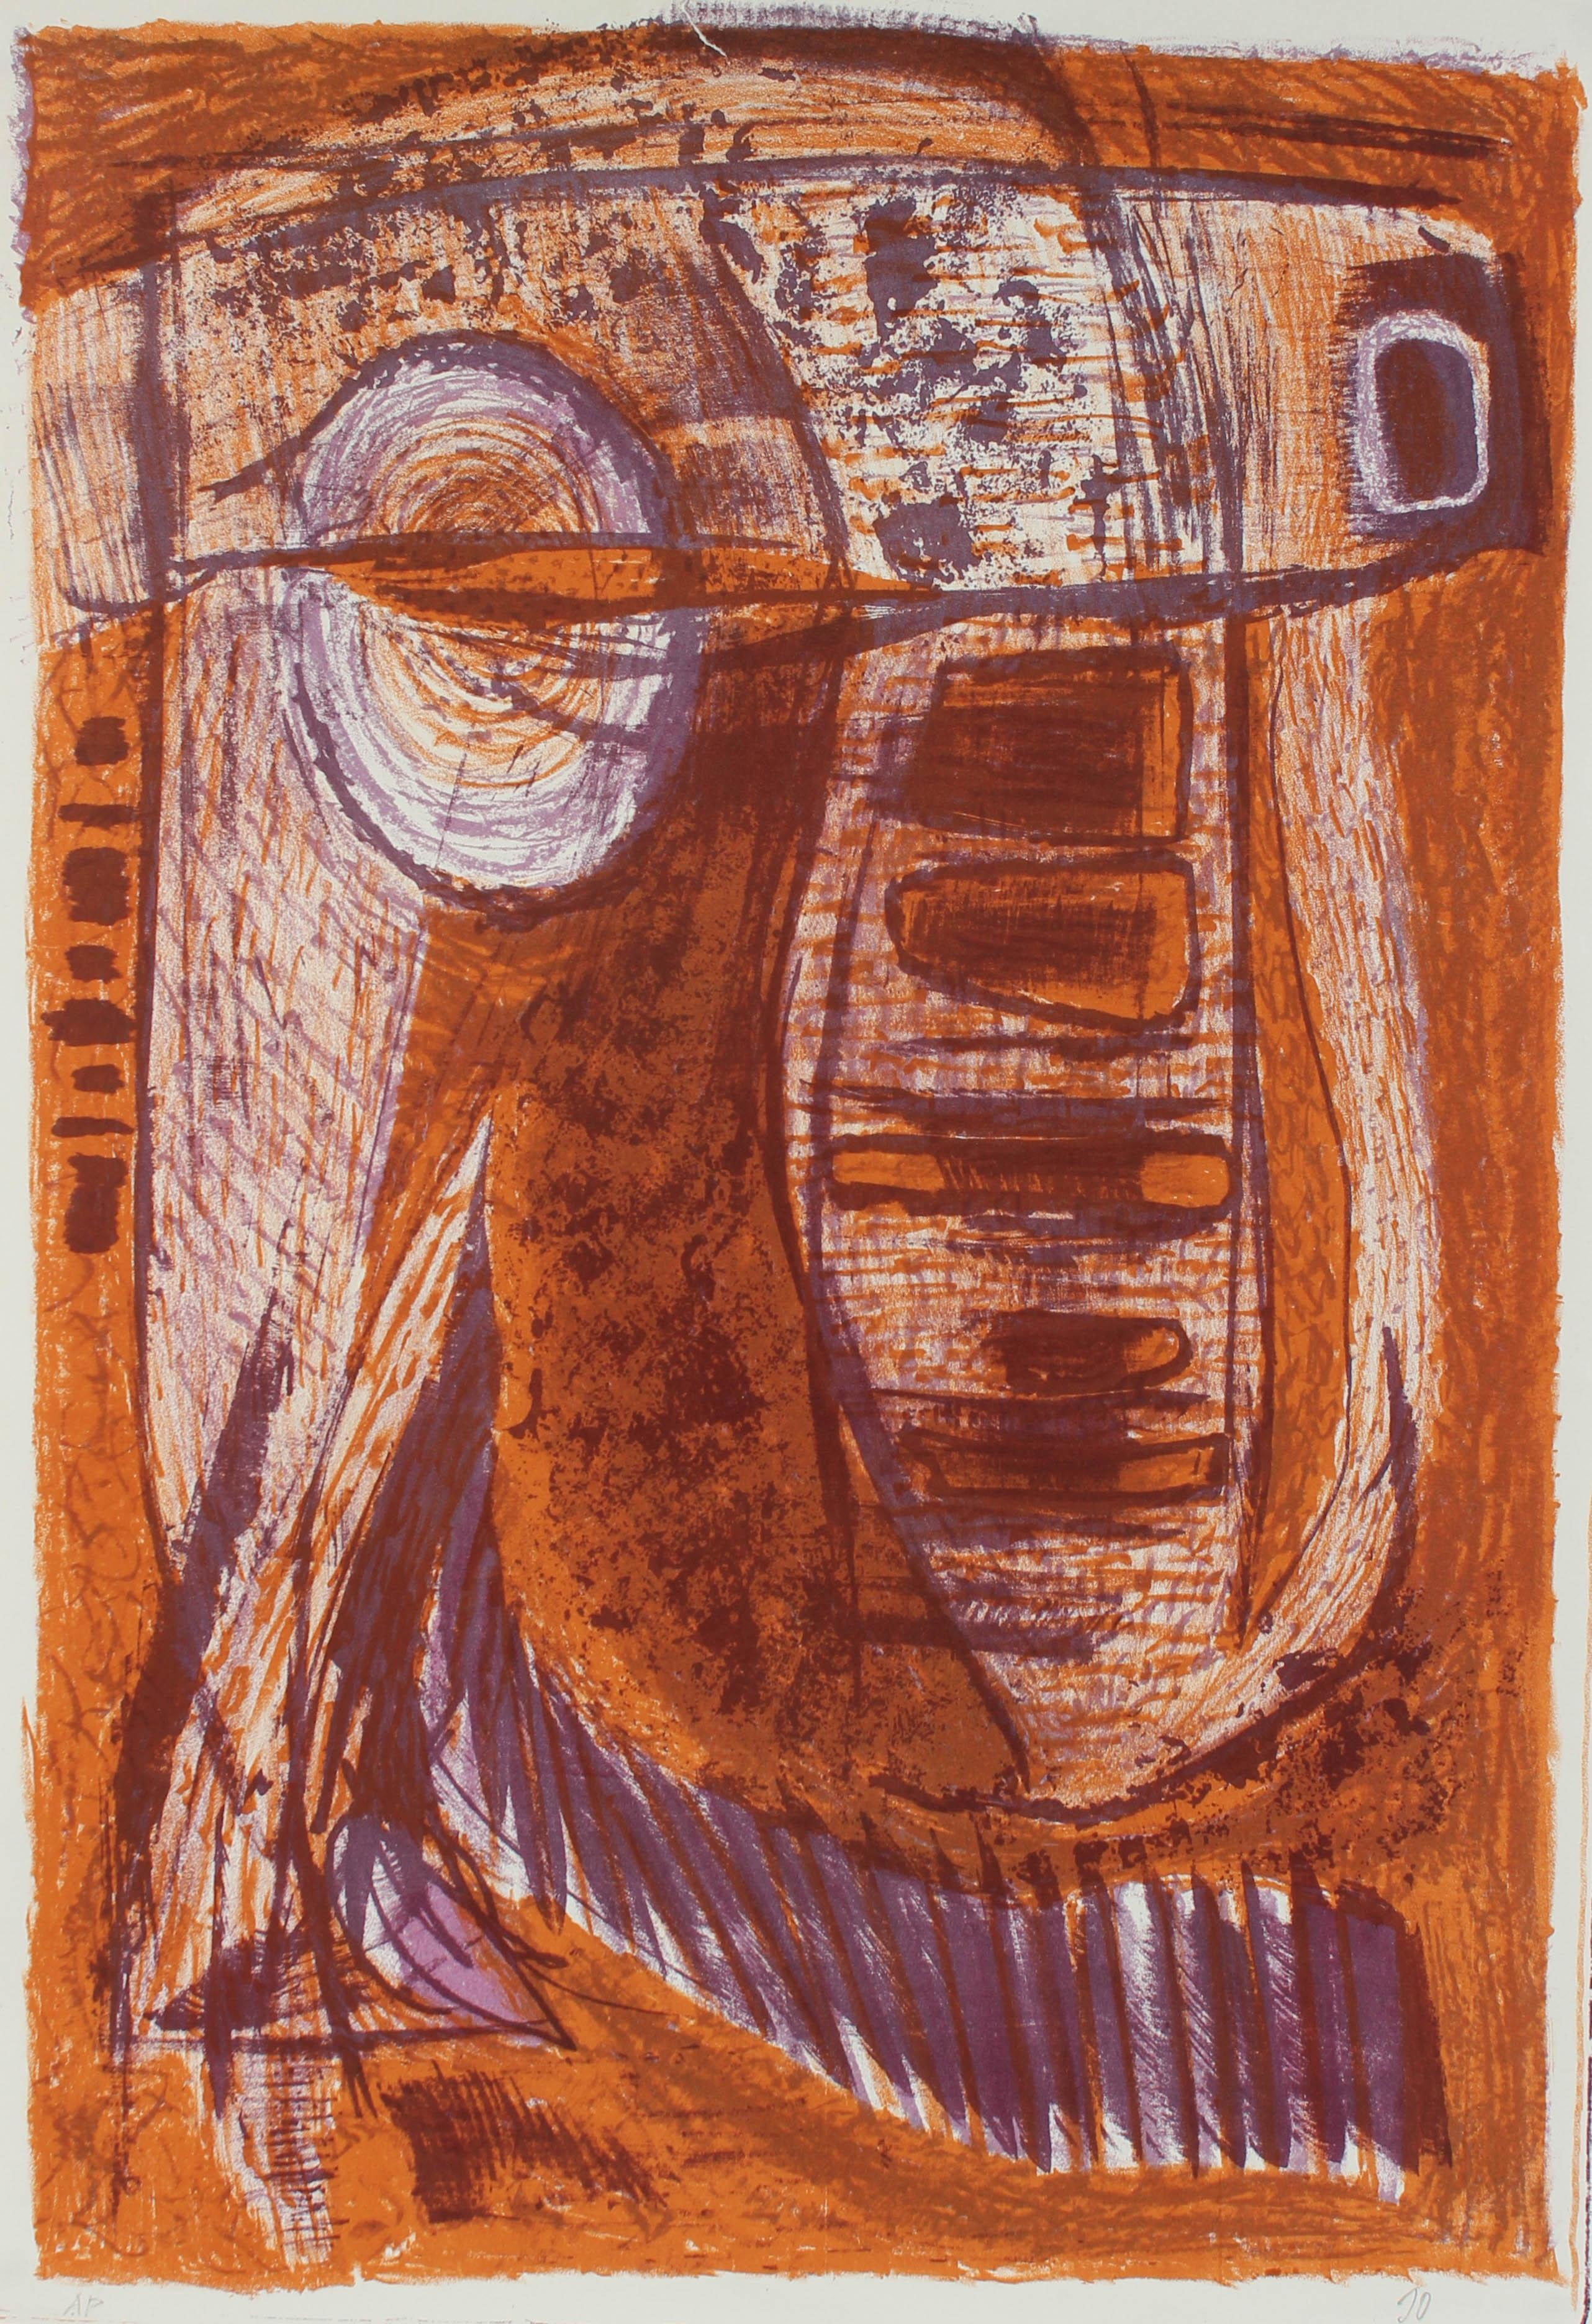 Mid Century Modernist Lithograph in Rust and Purple, Circa 1950s